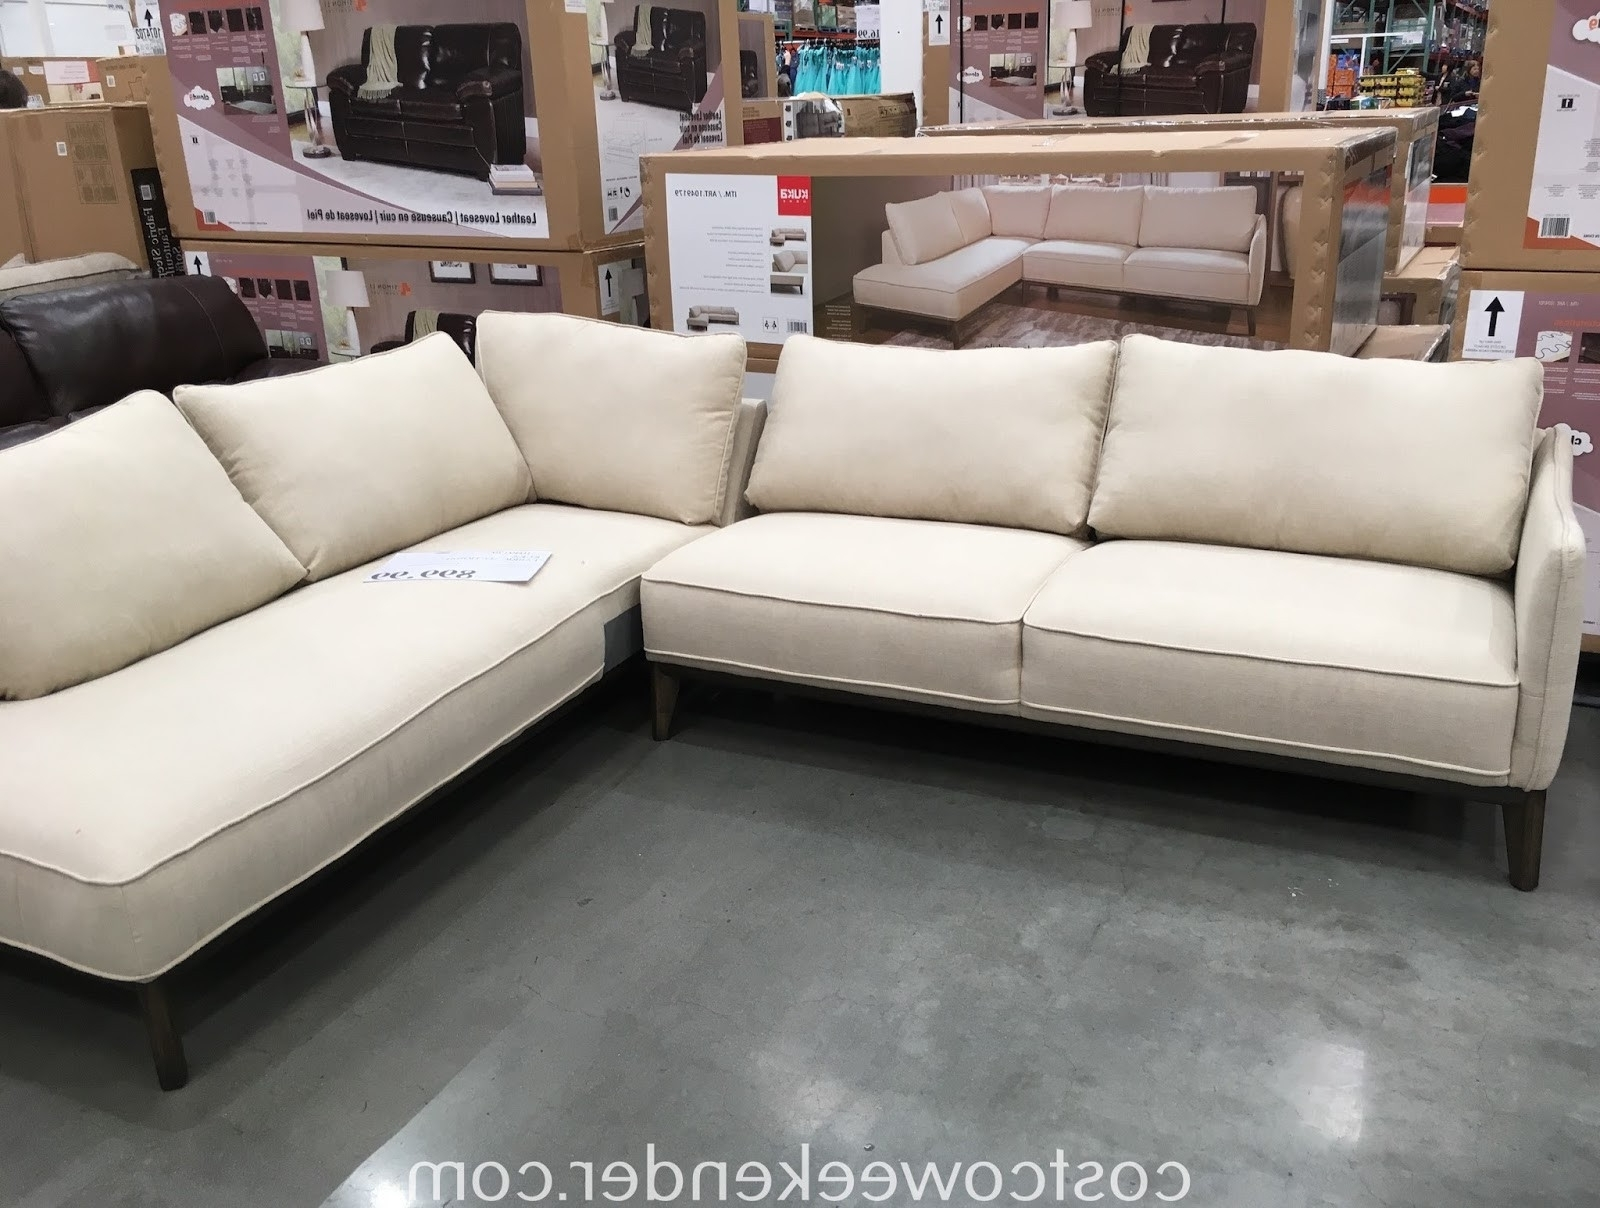 Merveilleux Furniture : Costco Furniture Reviews 2017 New Best Quality Within Most  Current Quality Sectional Sofas (